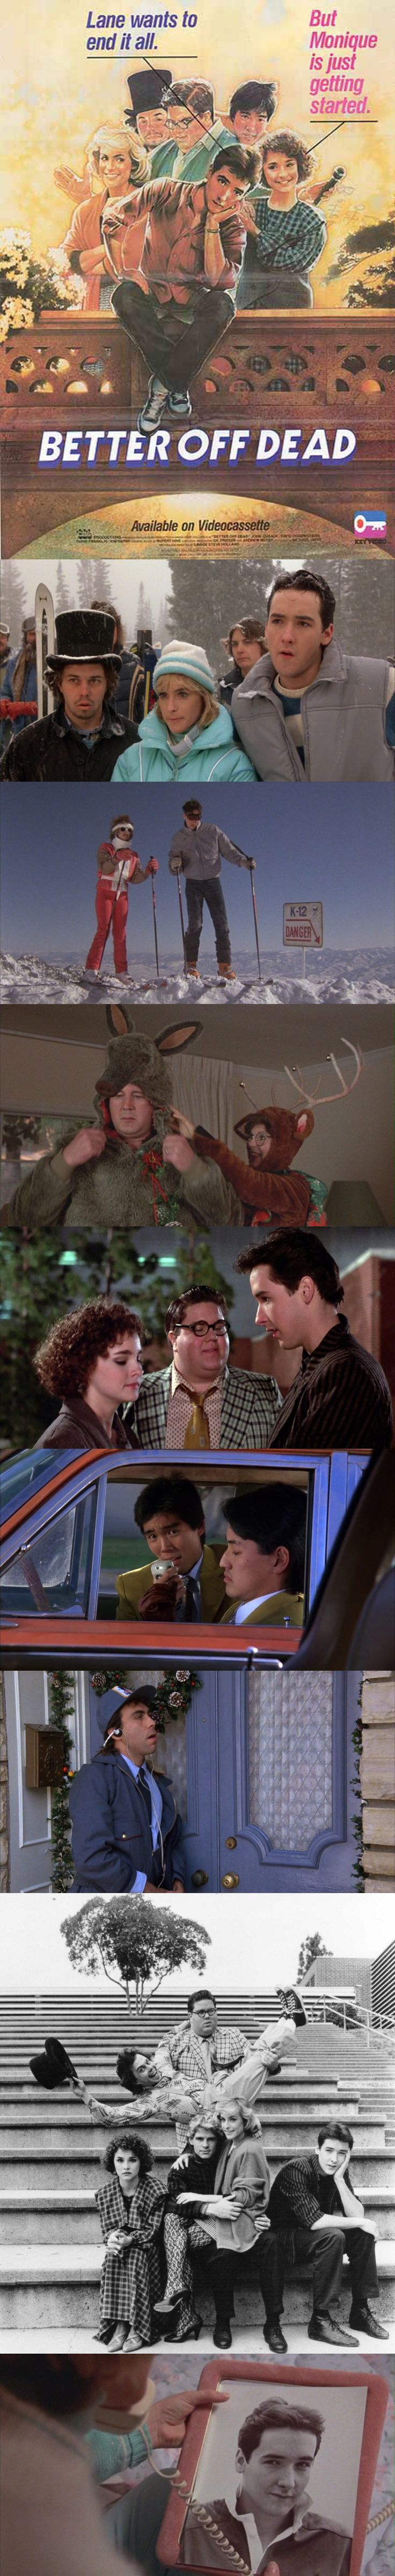 """""""Teenage life has never been darker…or funnier…""""  Better Off Dead (1985) starring John Cusack, Curtis Armstrong, Diane Franklin, and Amanda Wyss. Directed by Savage Steve Holland."""